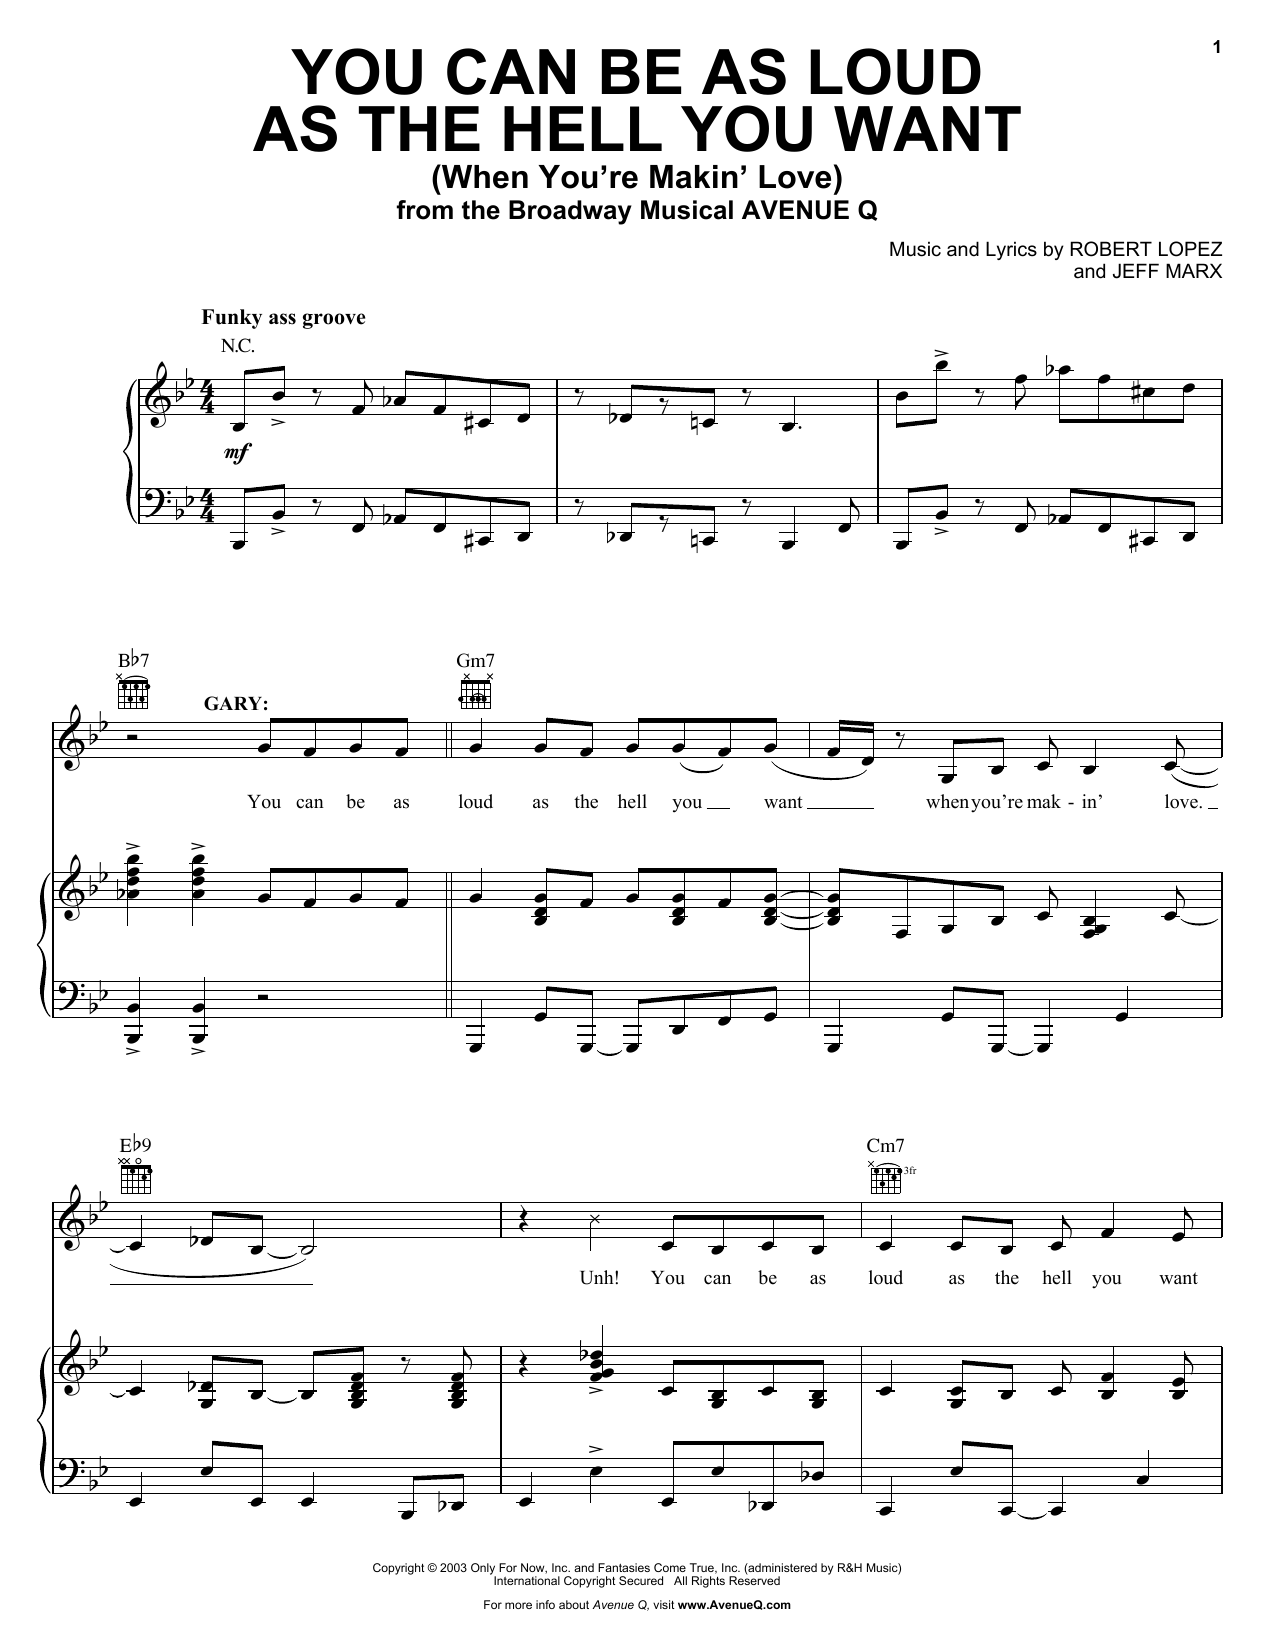 Robert Lopez & Jeff Marx You Can Be As Loud As The Hell You Want (When You're Makin' Love) (from Avenue Q) sheet music notes and chords. Download Printable PDF.